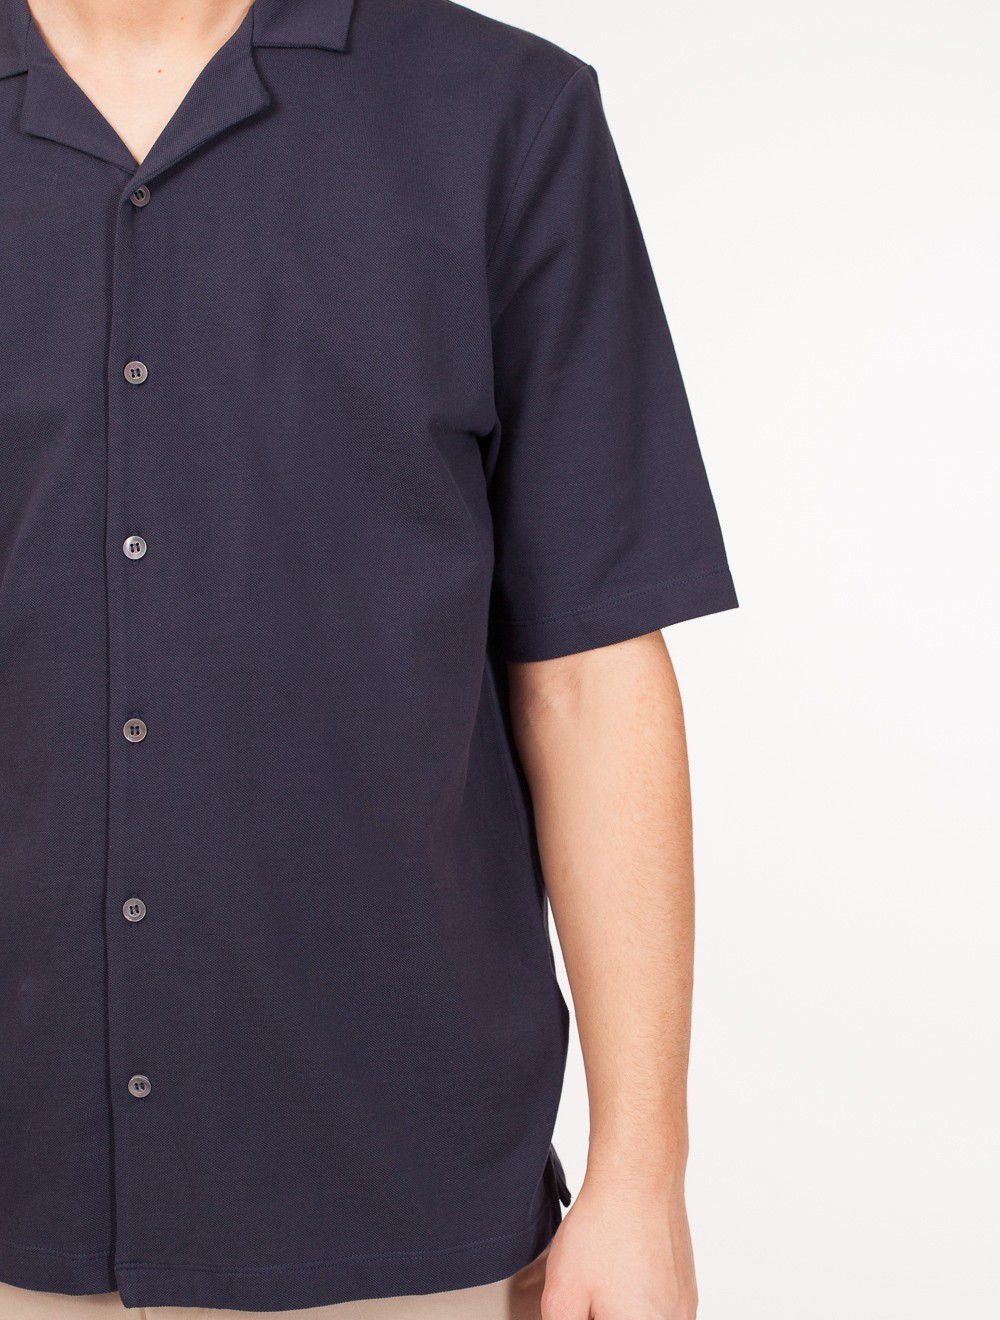 36d31341 SUNSPEL | Short Sleeve Pique Shirt Navy - T-skjorte